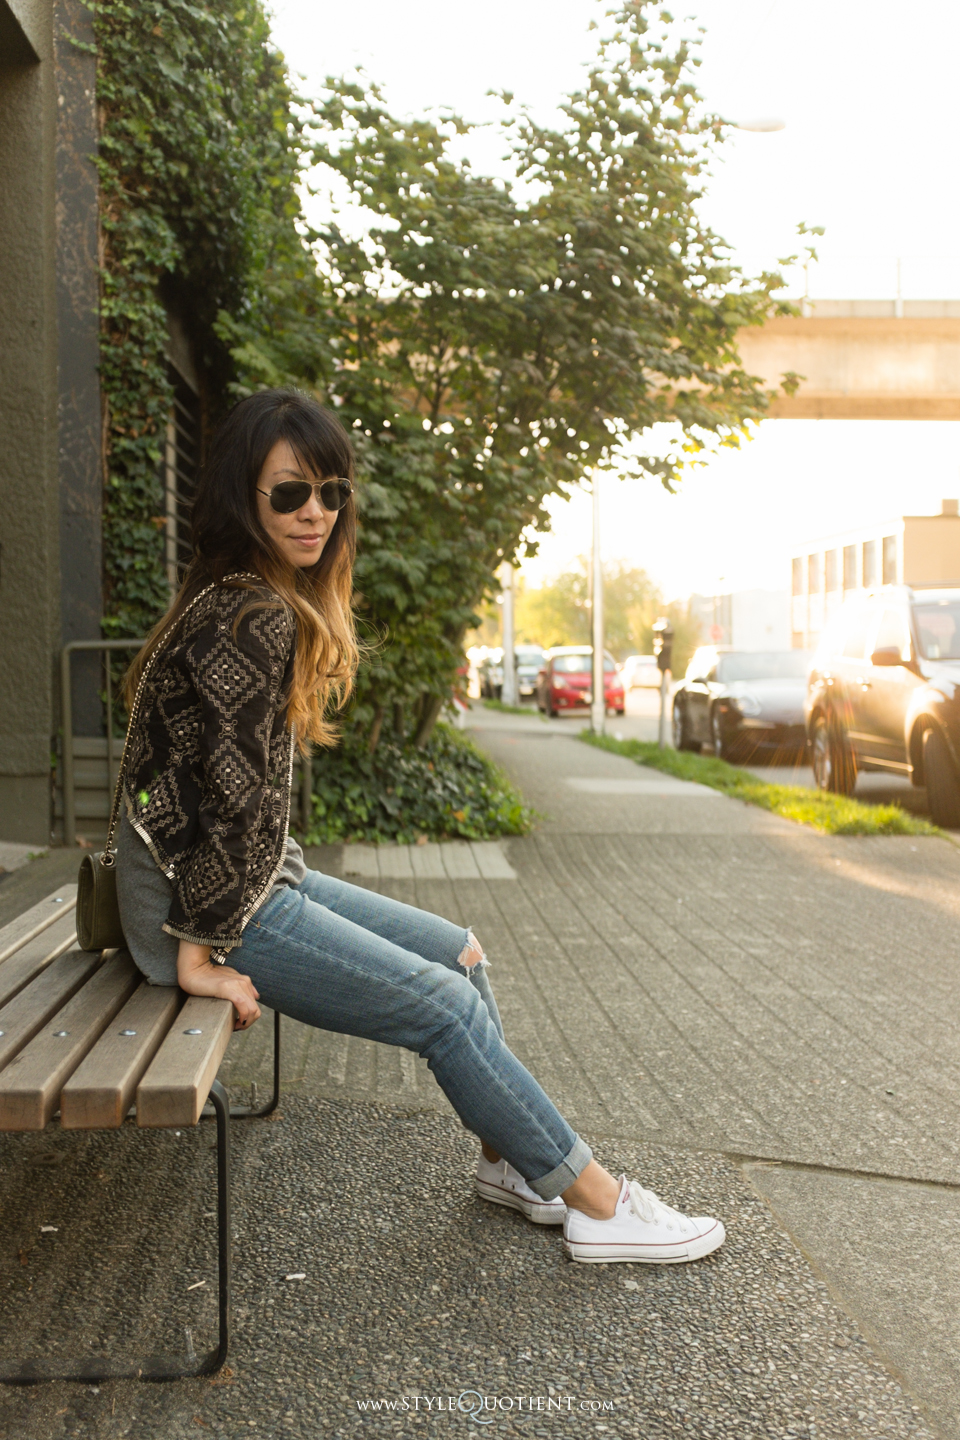 Paul Melo StyleQuotient Vancouver Street Style 002